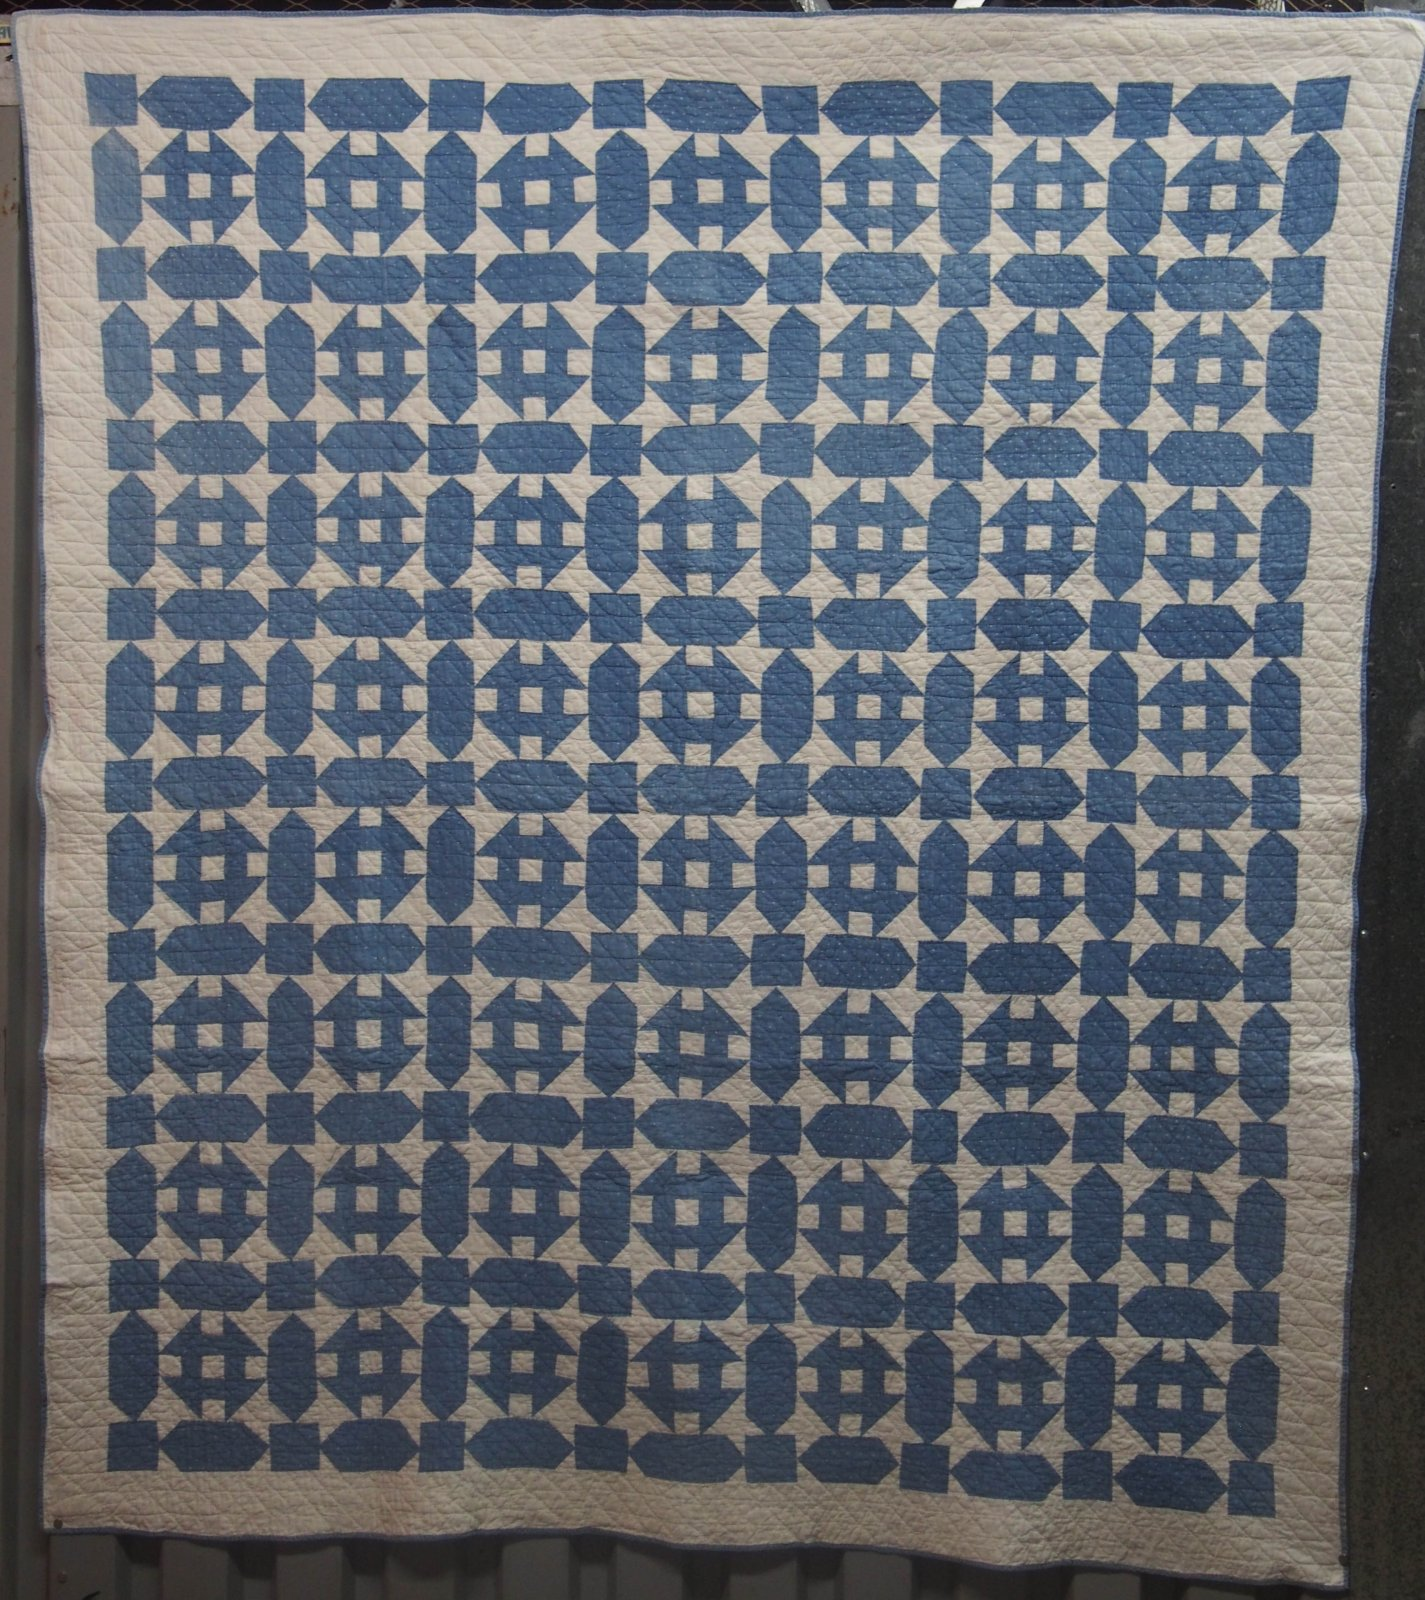 MONKEY WRENCH ANTIQUE QUILT blue white small scale blocks